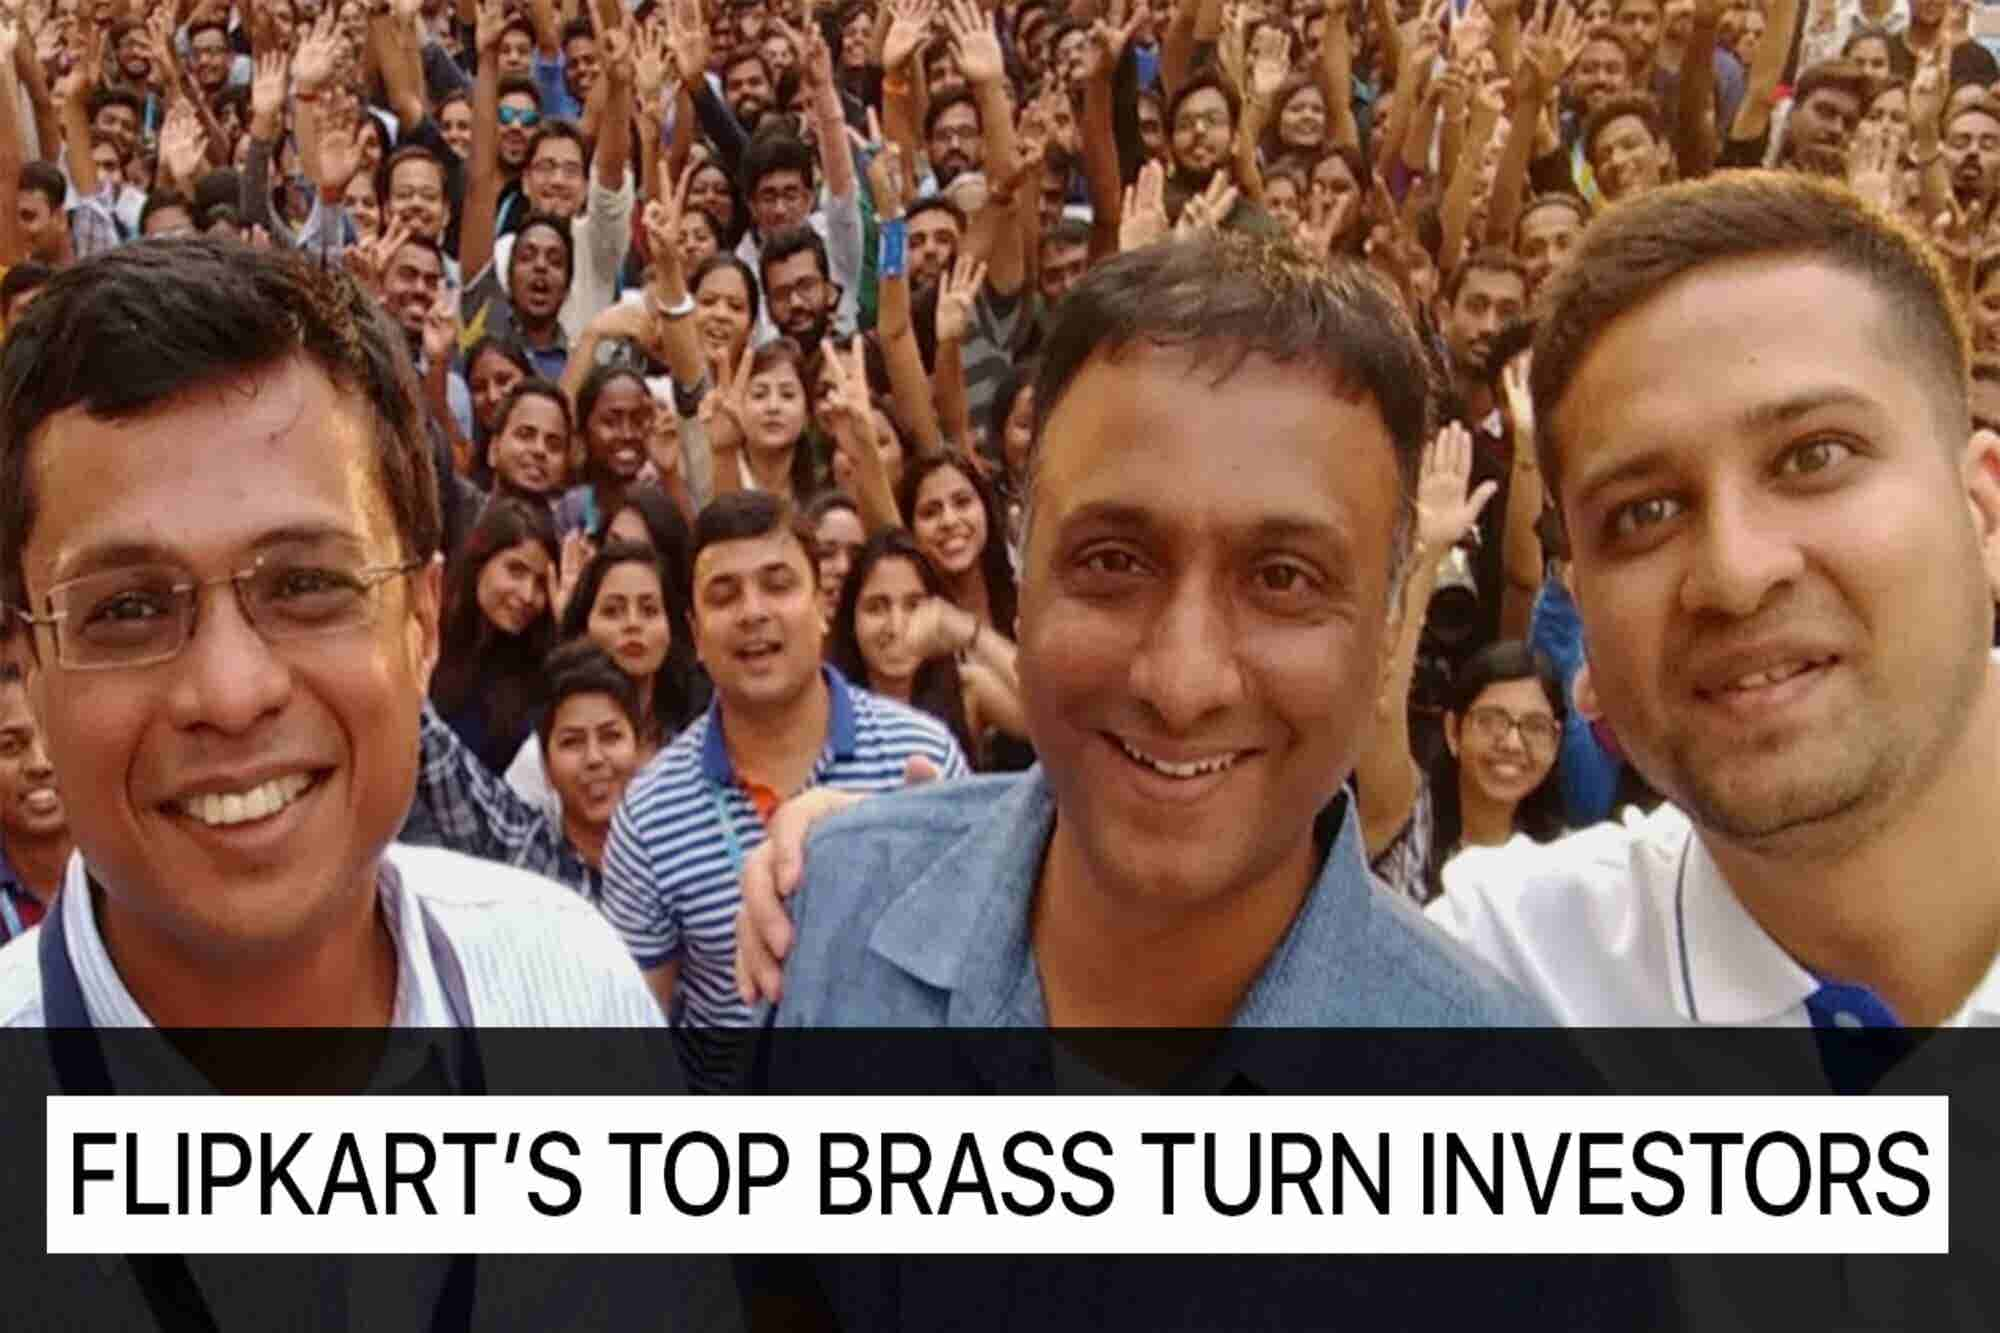 Startup Saturday: Flipkart's Top Brass Enters the Investor Space & the Biggest Acquisition of Decade